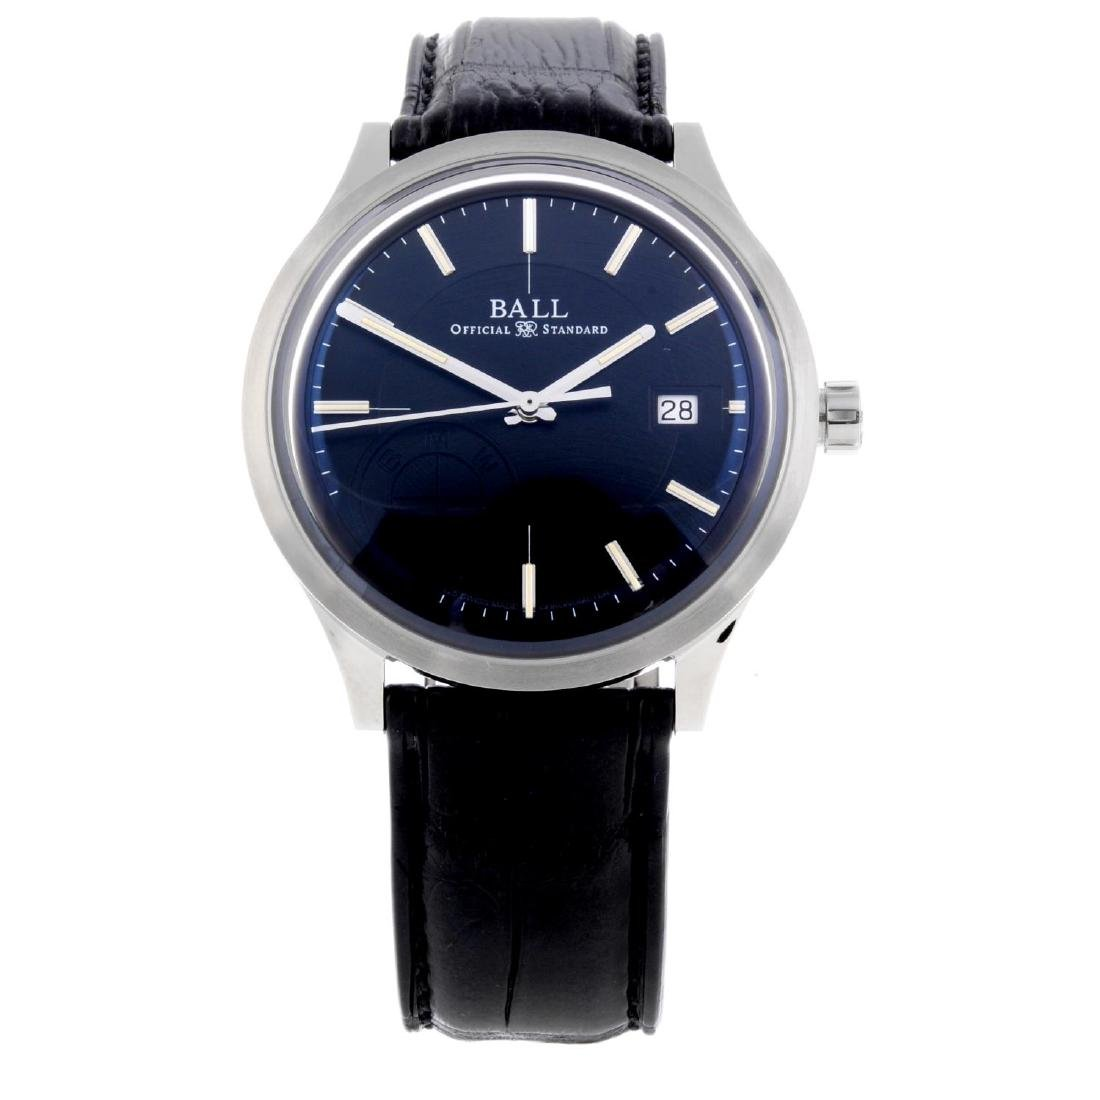 BALL - a gentleman's 'BMW Classic' wrist watch.